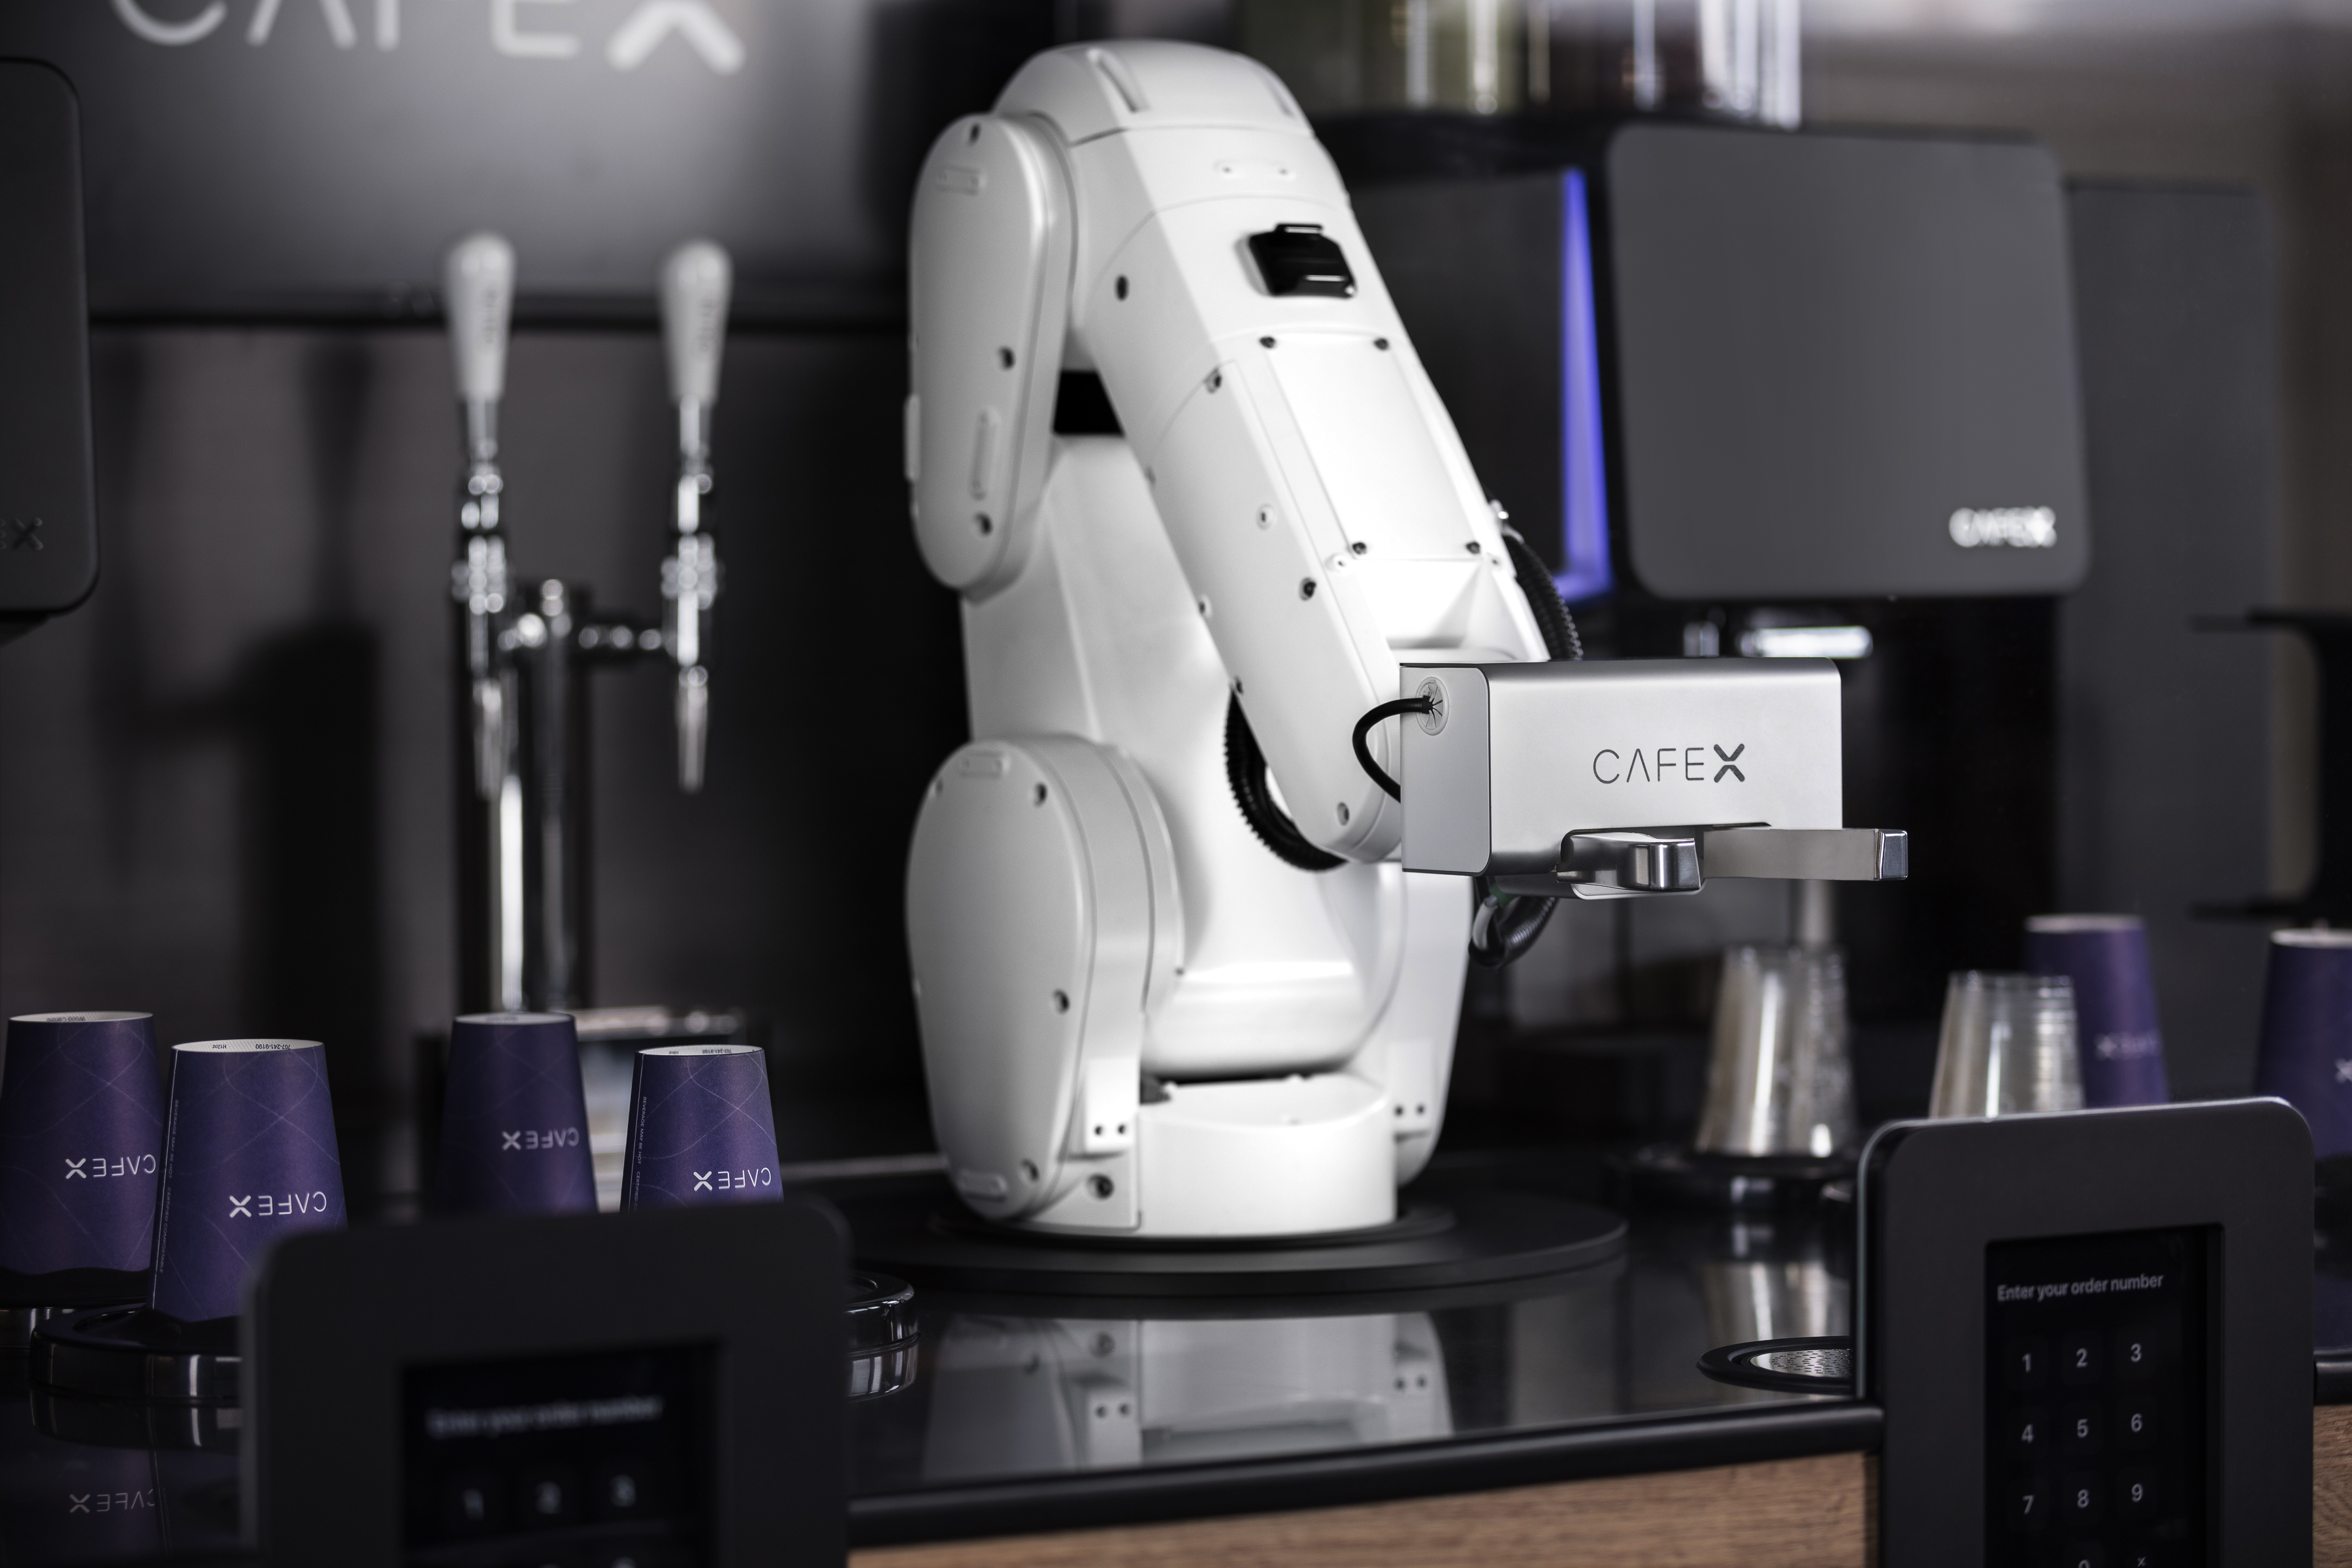 Cafe X S Second Generation Robot Barista Is A True Coffee